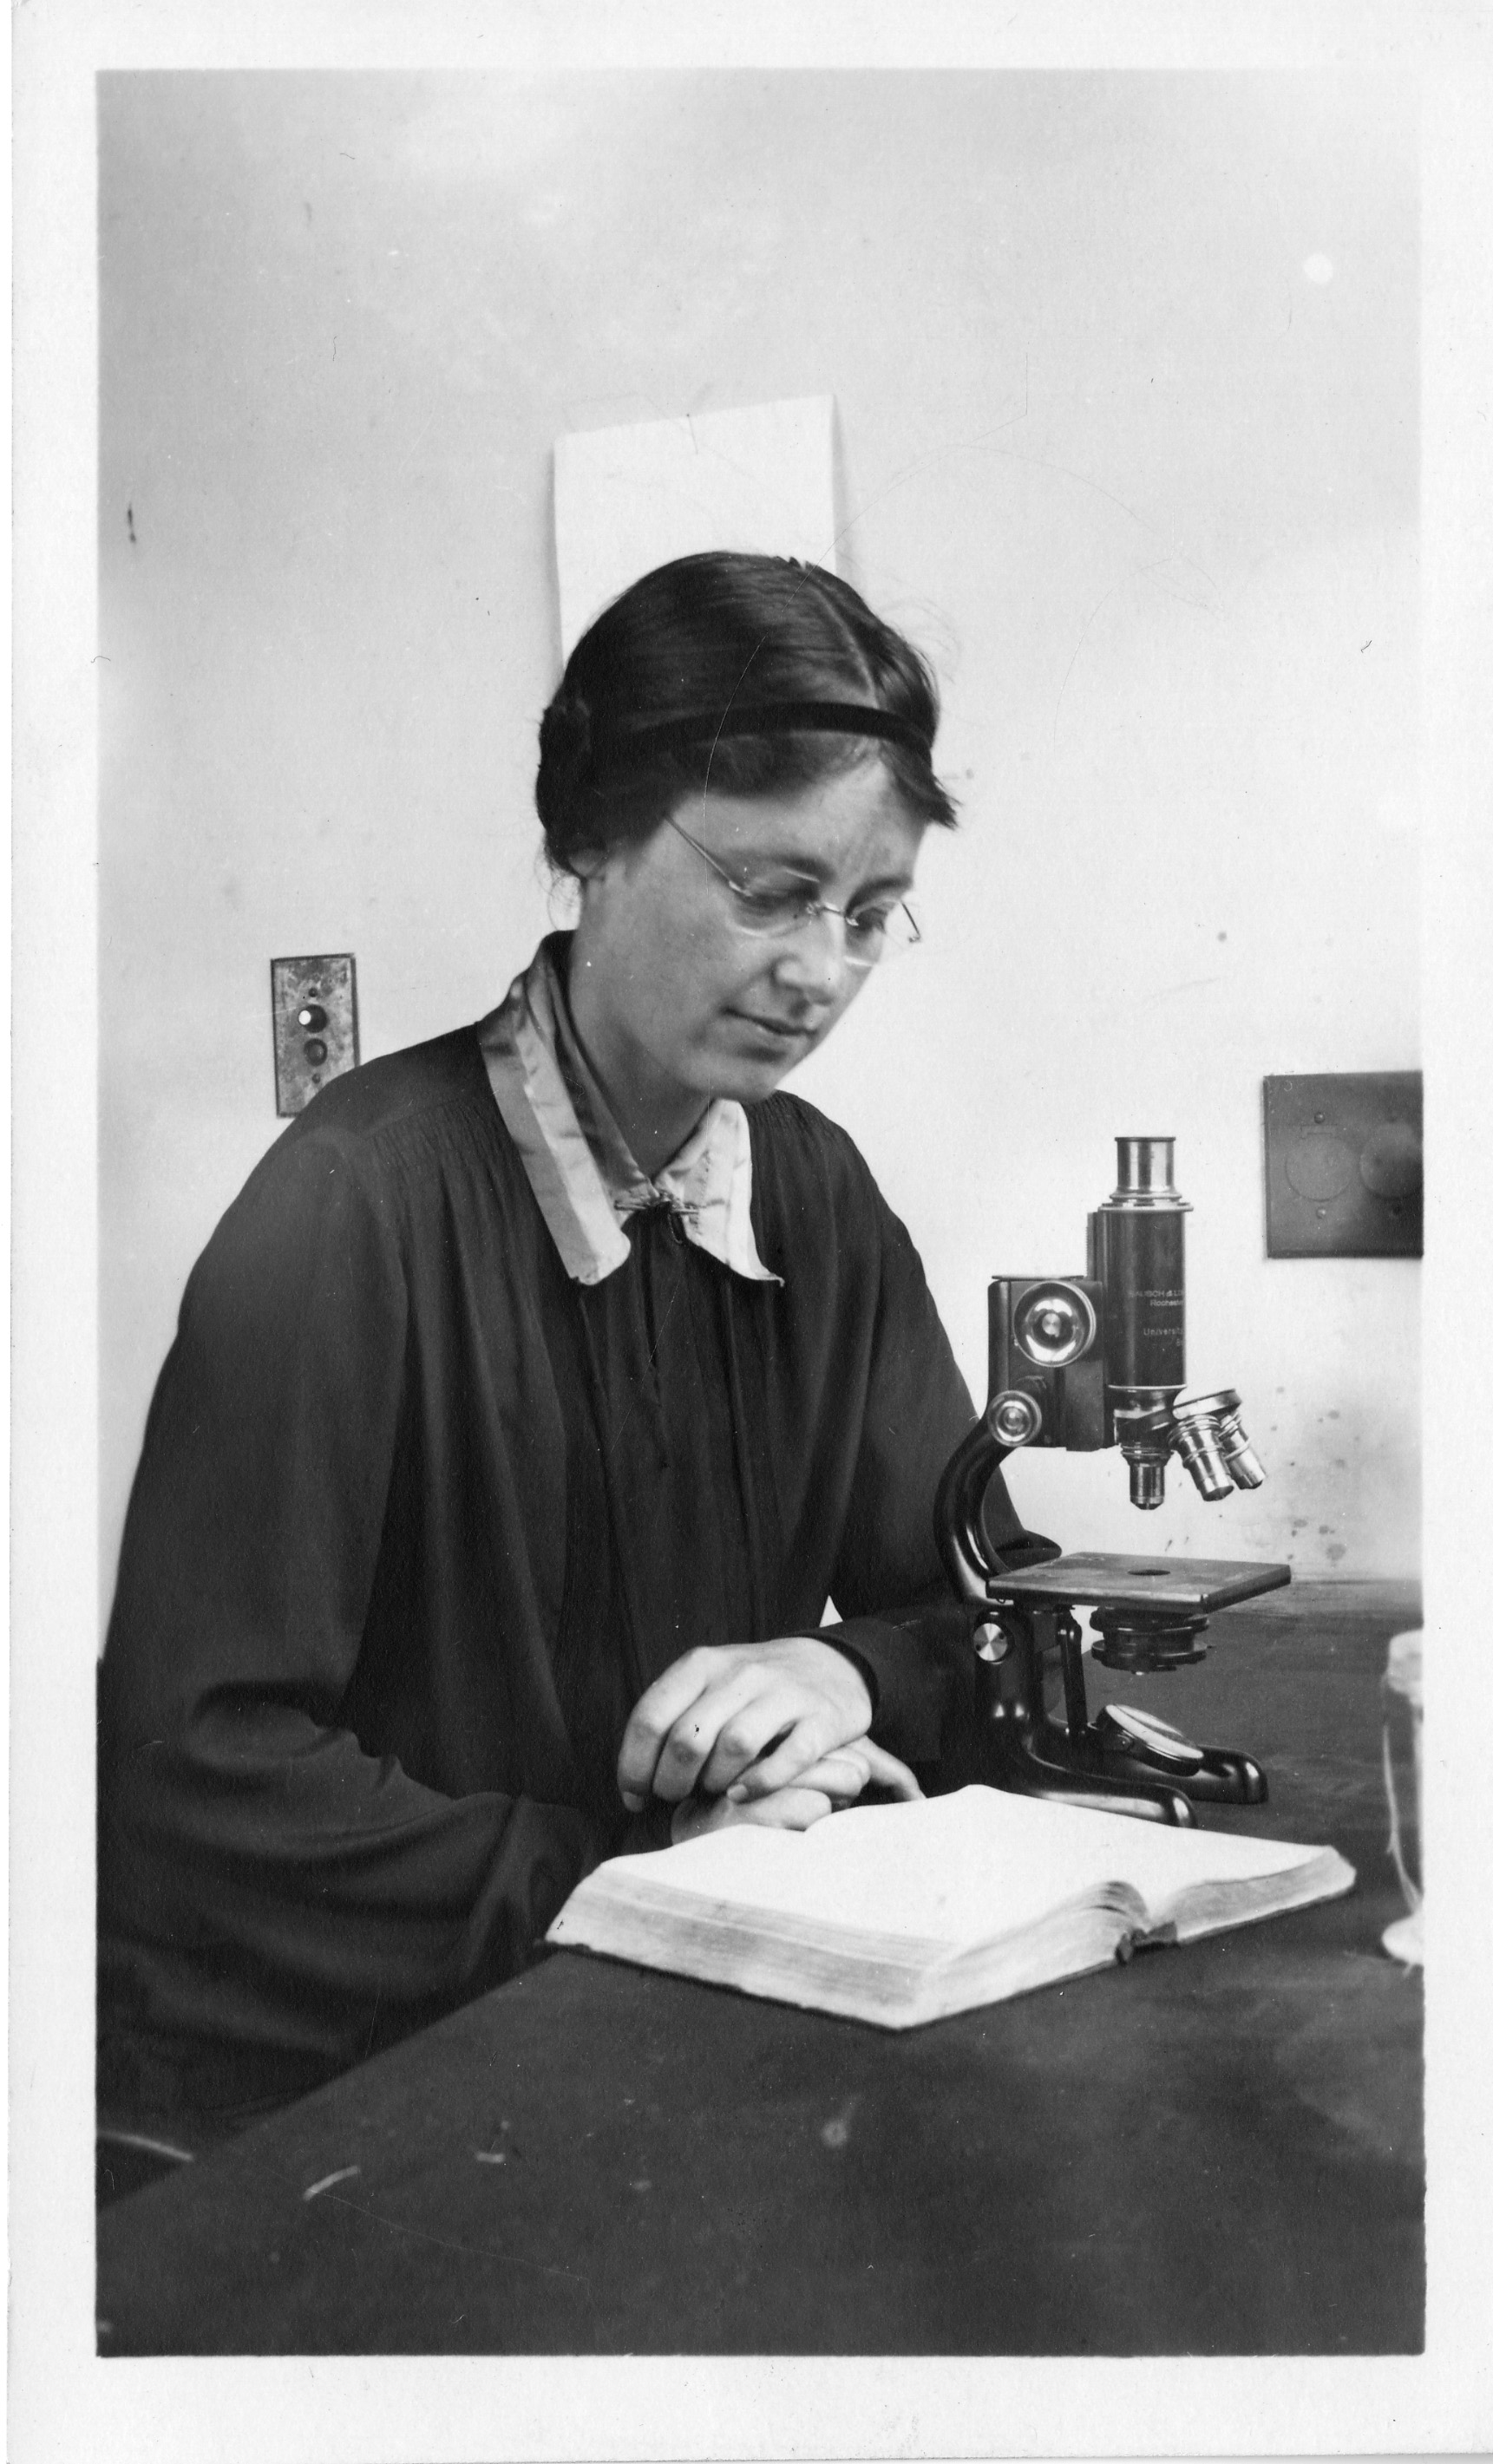 Mary Drew-Baker discovered the unusual life cycle of nori and saved the Japanese seaweed farming industry.